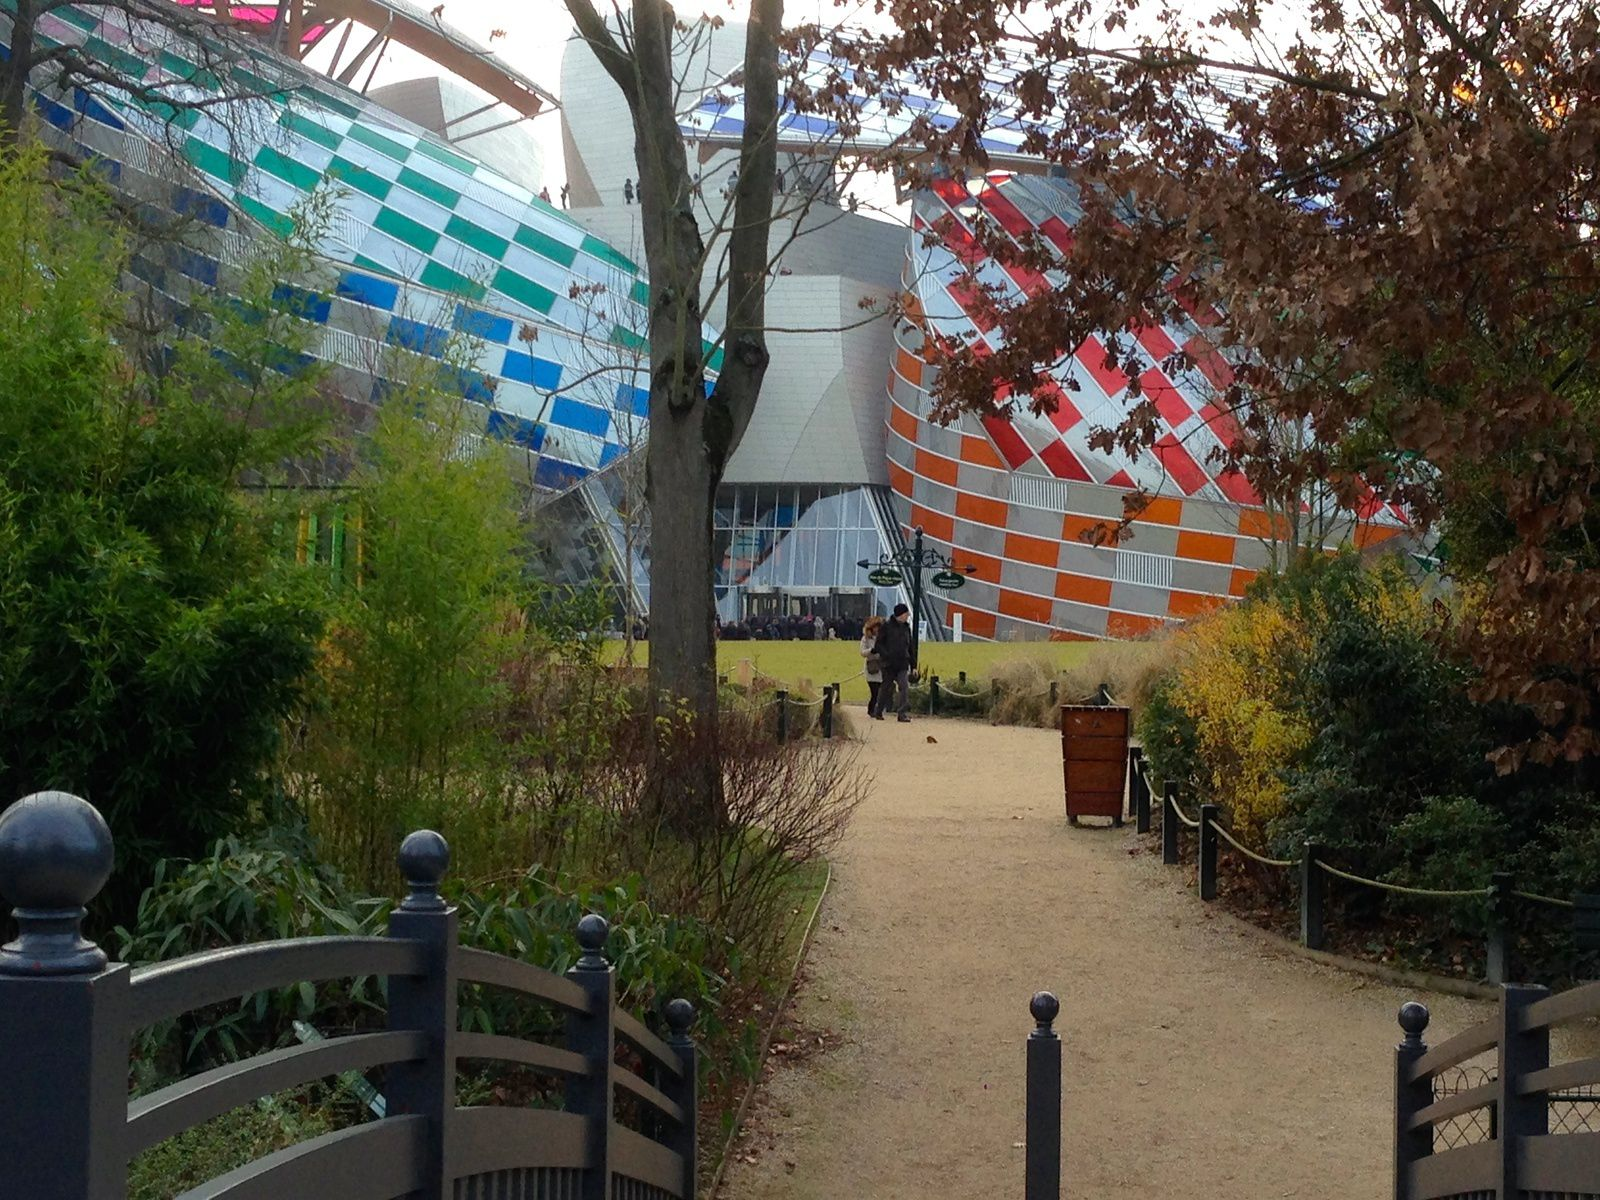 Jardin d 39 acclimatation et fondation louis vuitton paris for Au jardin d acclimatation